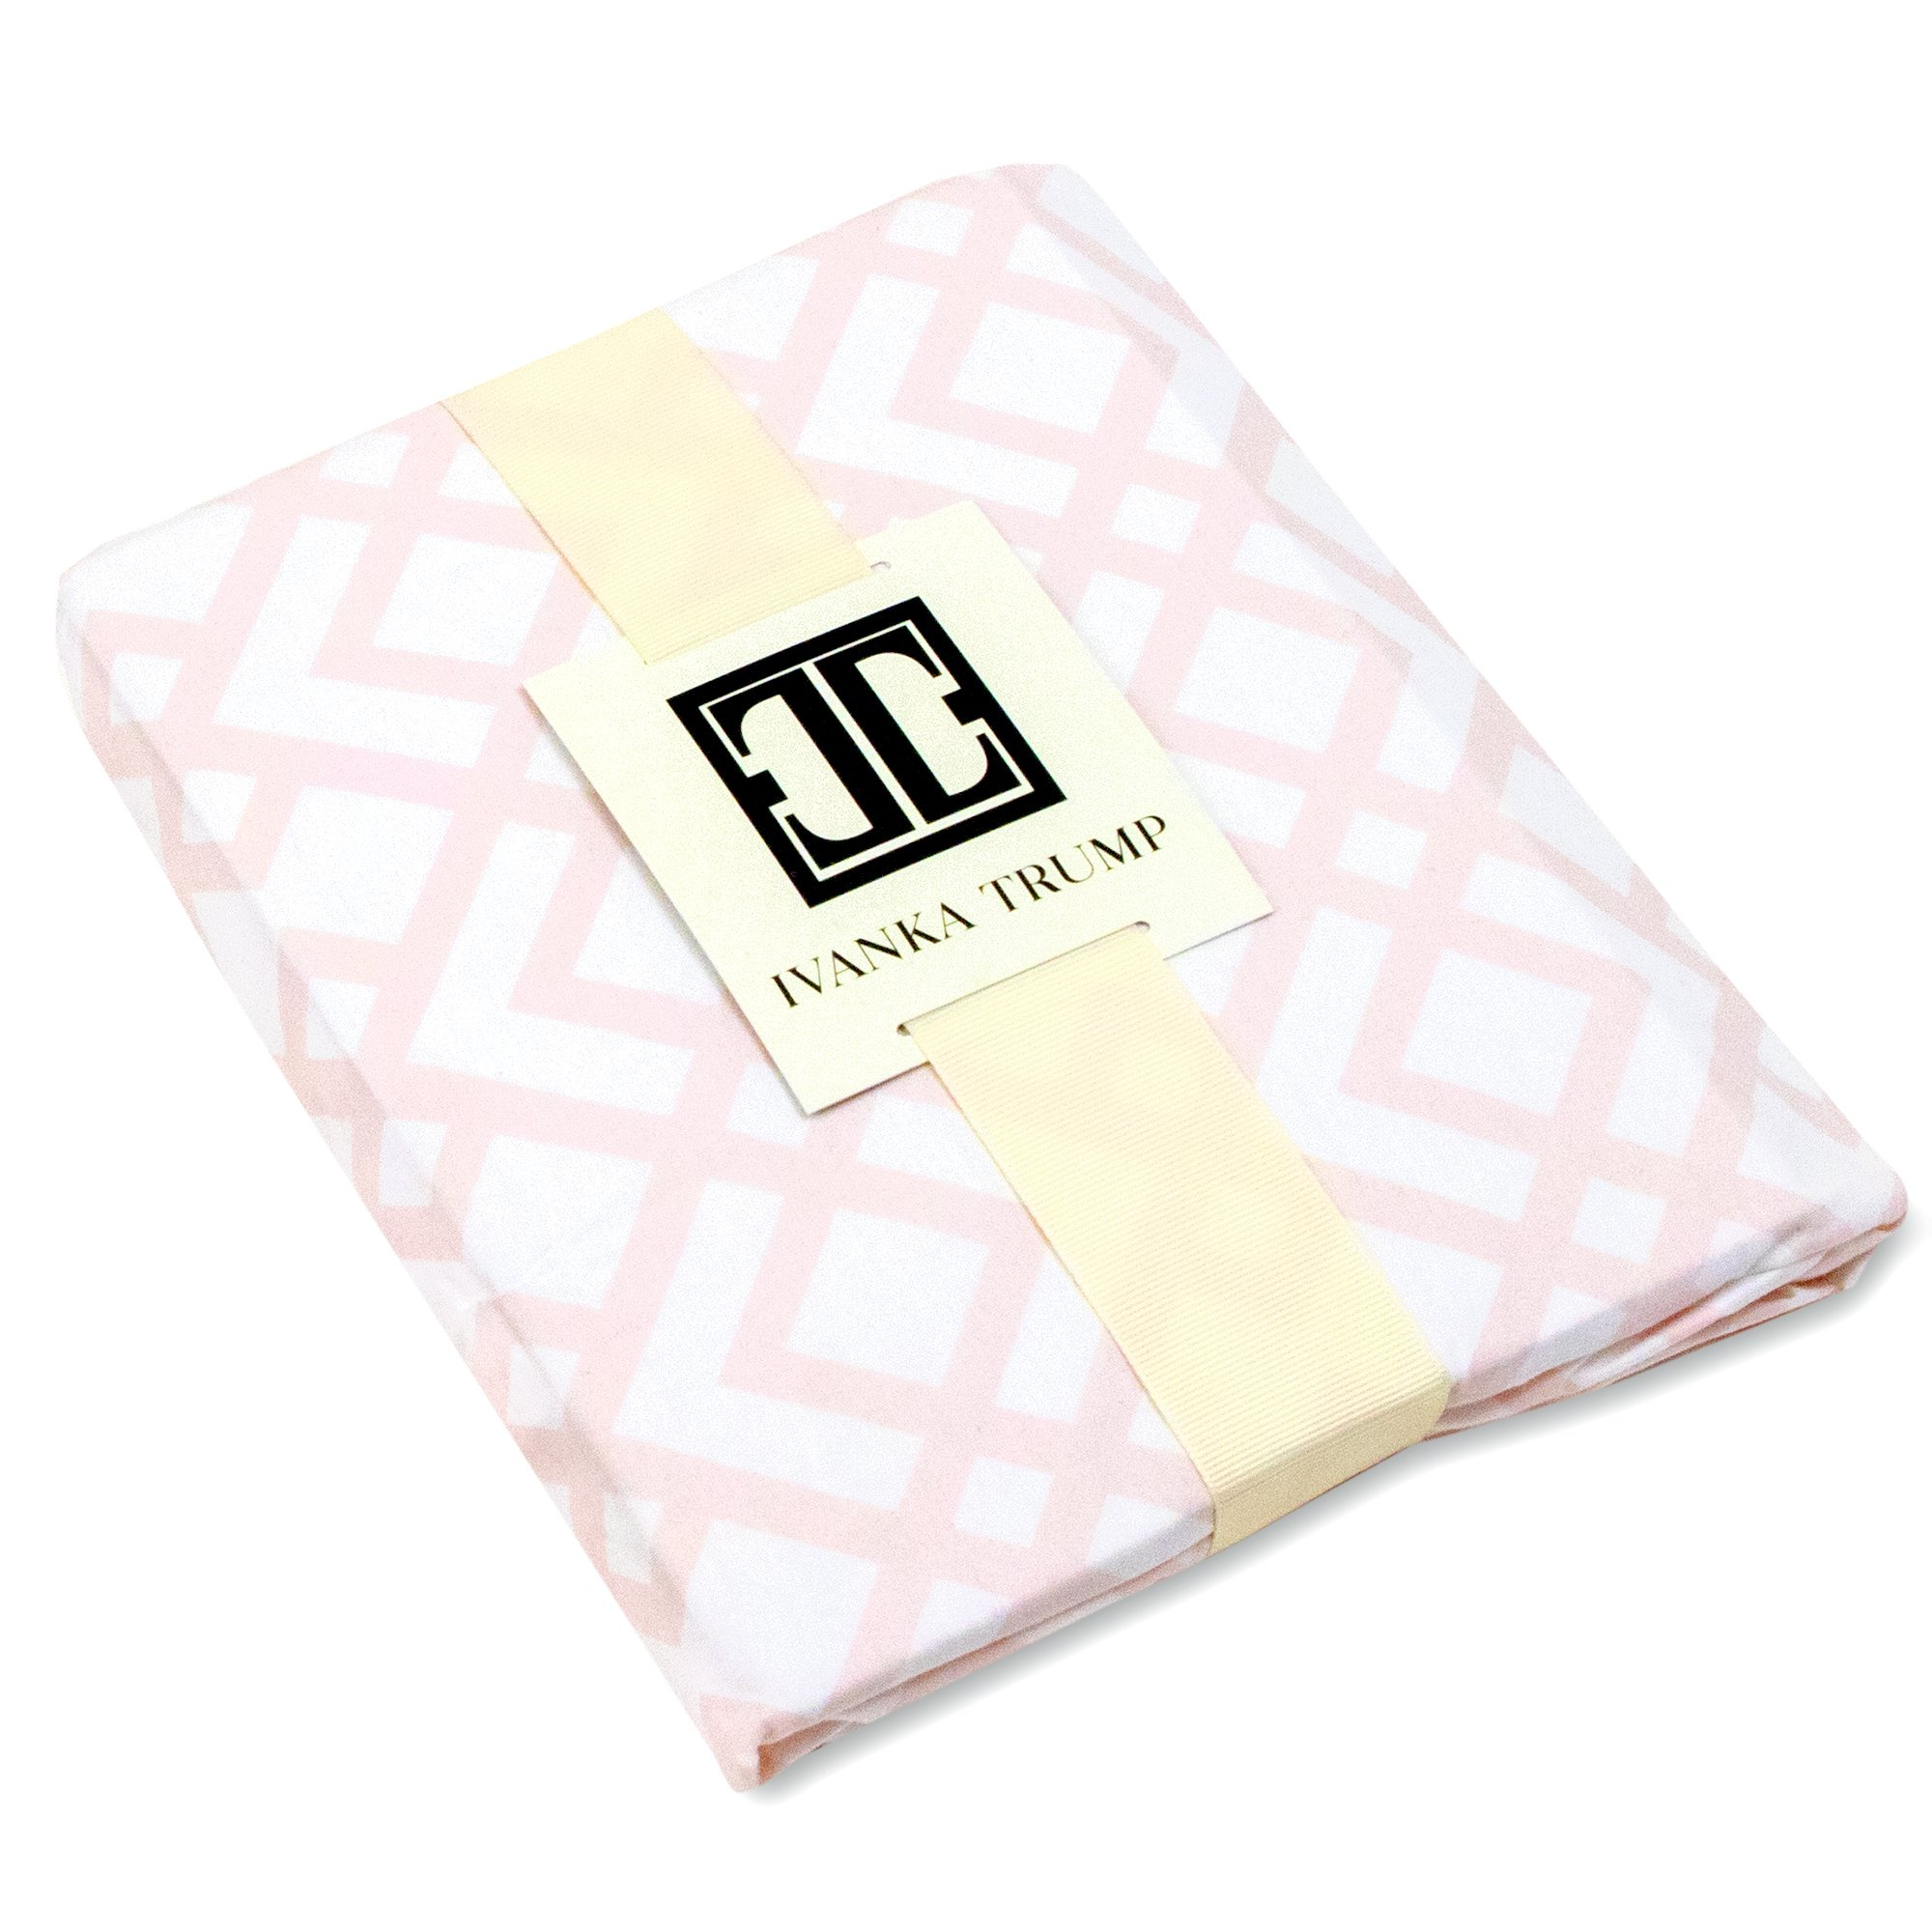 Amazon.com : Ivanka Trump Wildflower Collection: Nursery Bedding Baby Crib Bedding Fitted Sheet 100% Cotton 200 Thread Count - Pink and White Trellis : Baby